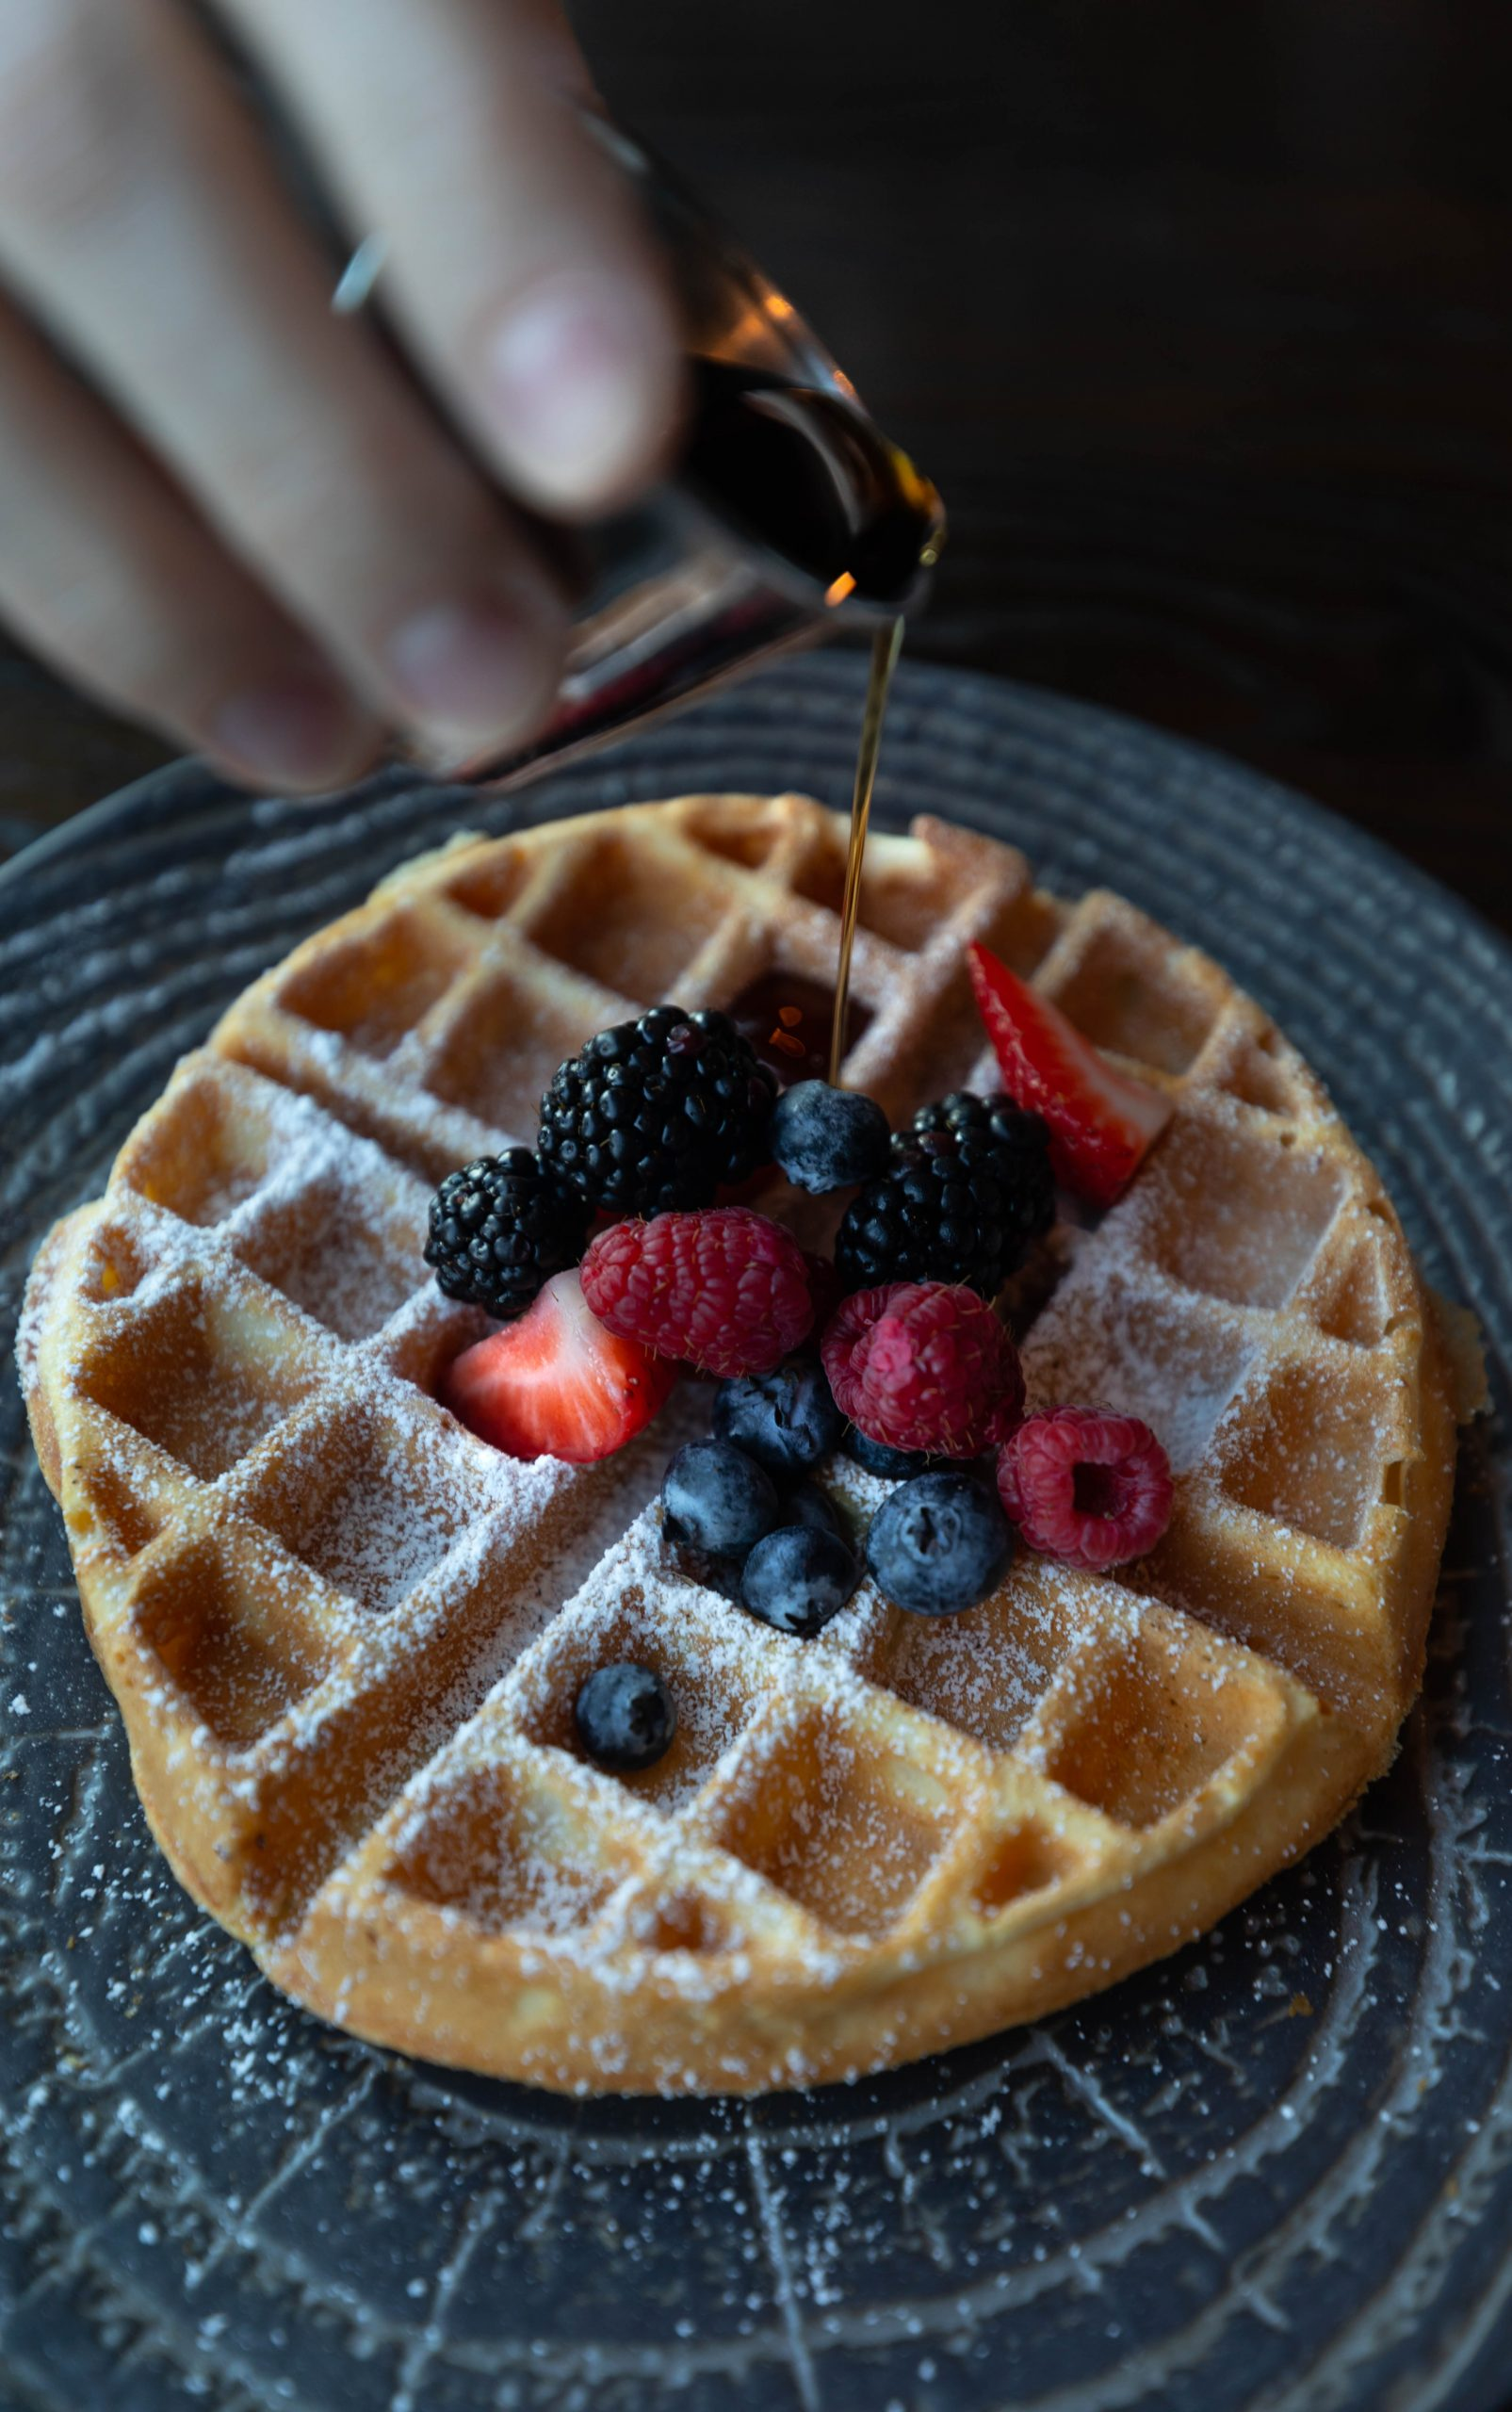 Goldfinch Tavern Belgian Waffle Topped with Fresh Fruit Seasonal Berries and Maple Syrup at Four Seasons Hotel Seattle Washington by Annie Fairfax